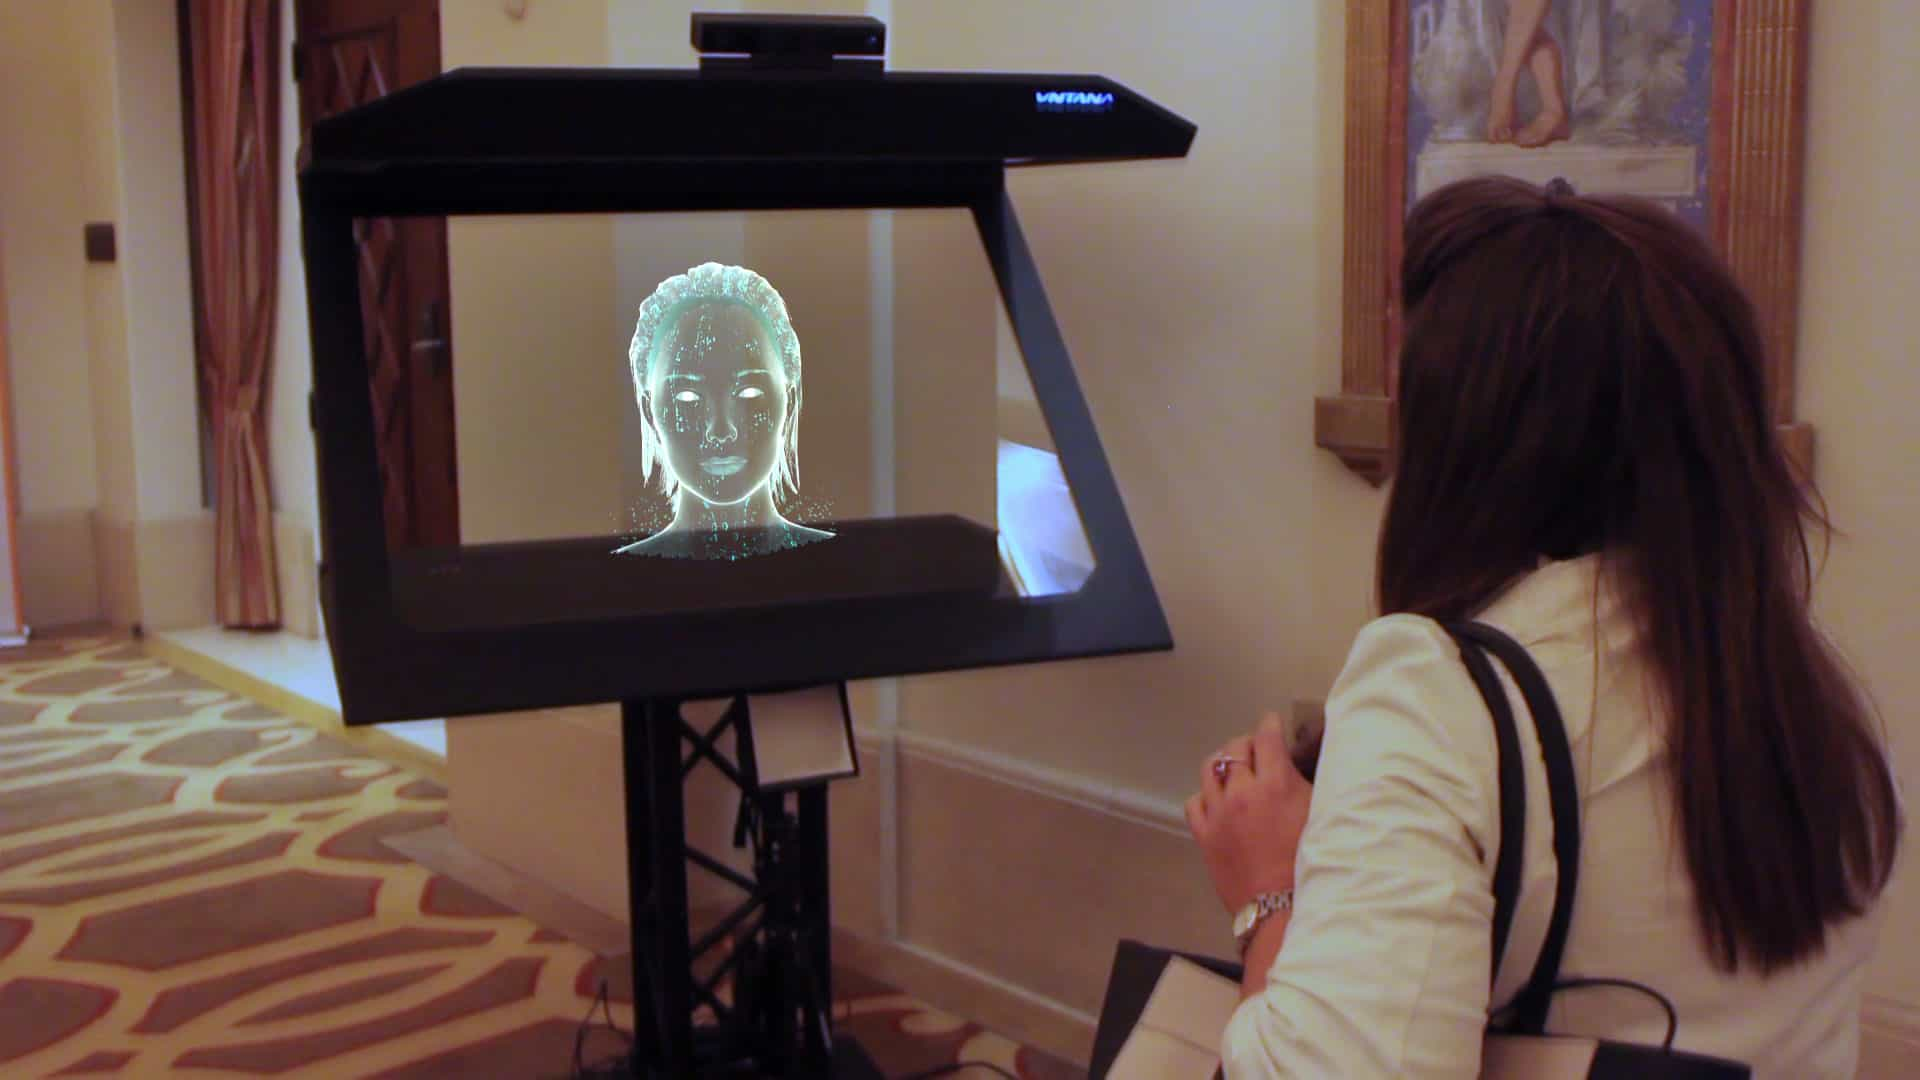 FIRST-EVER RESPONSIVE AI HOLOGRAM LAUNCHED BY VNTANA AND SATISFI LABS PARTNERSHIP